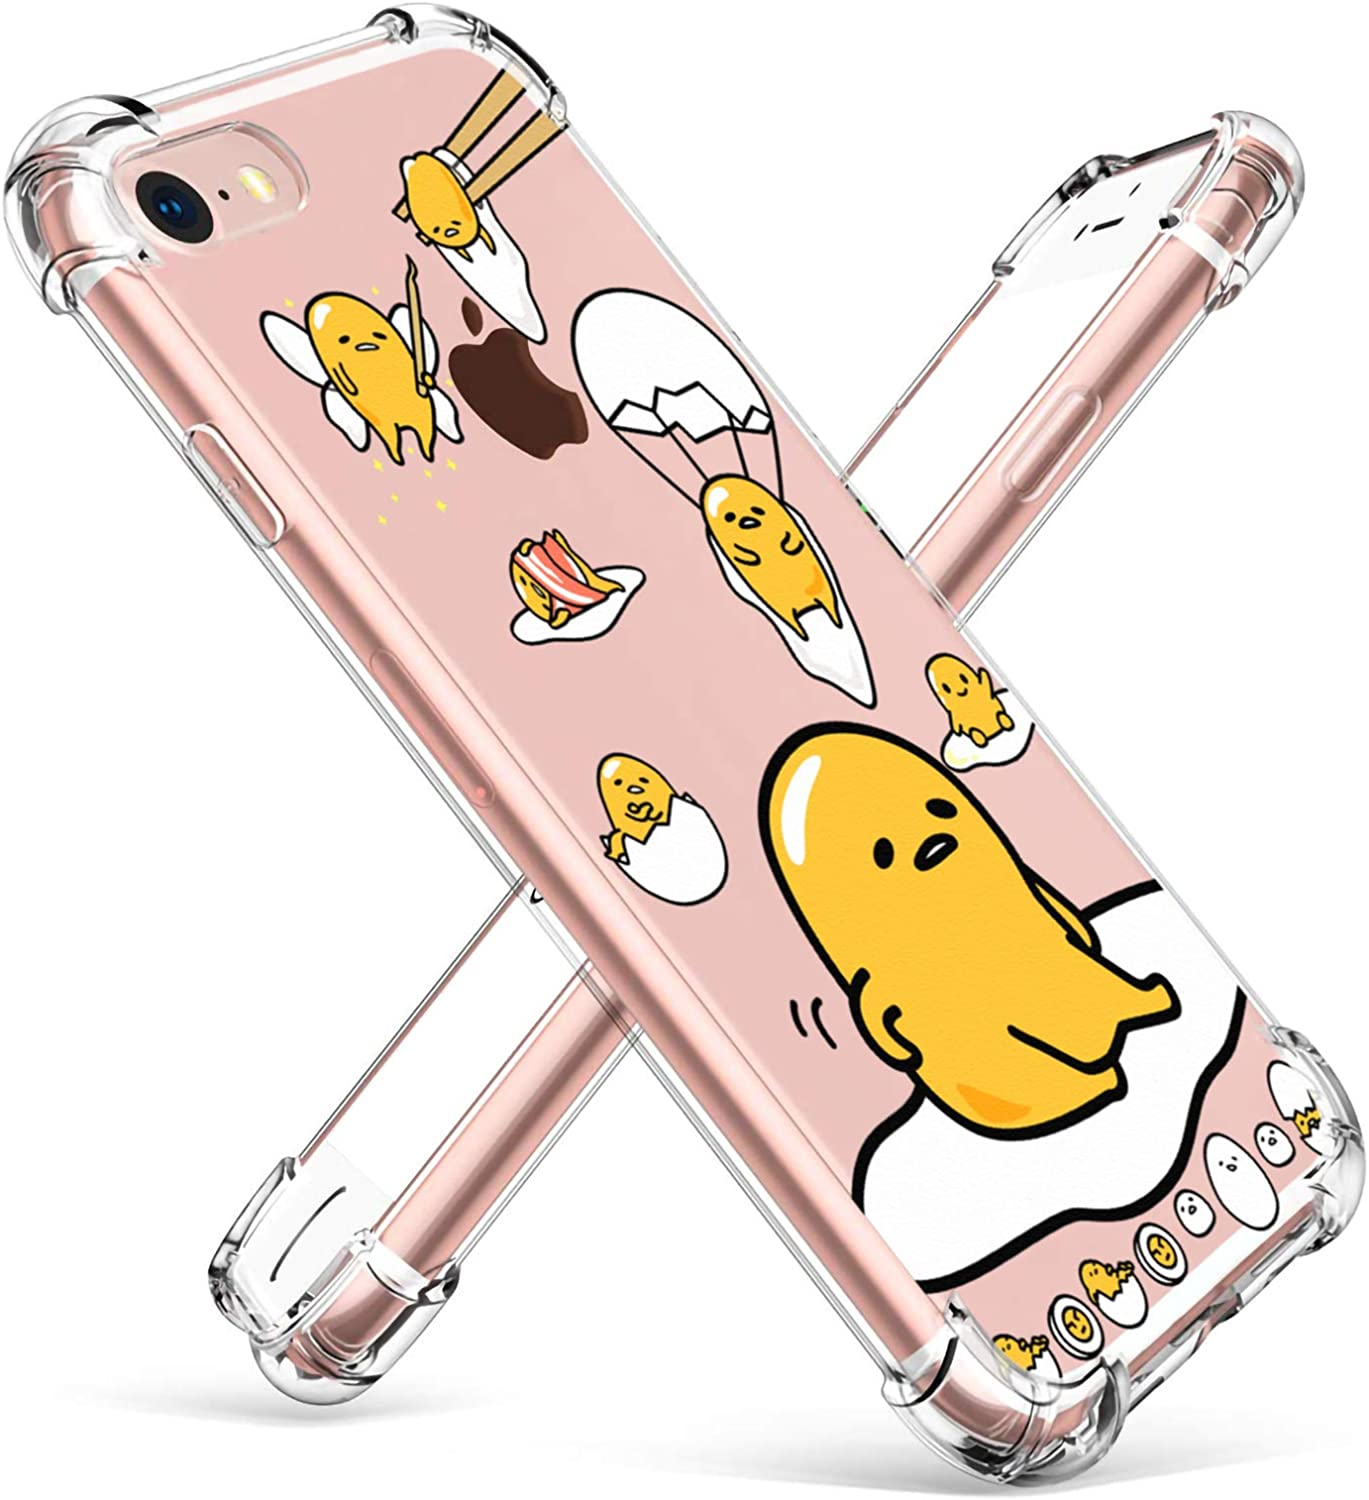 """Coralogo for iPhone 6 / 6S TPU Case, 3D Cute Cartoon Funny Design Character Protective Unique Chic Kawaii Fashion Fun Cool Stylish Cover Skin Teens Kids Girls Cases for iPhone 6 / 6S 4.7"""" (Lazy Egg"""